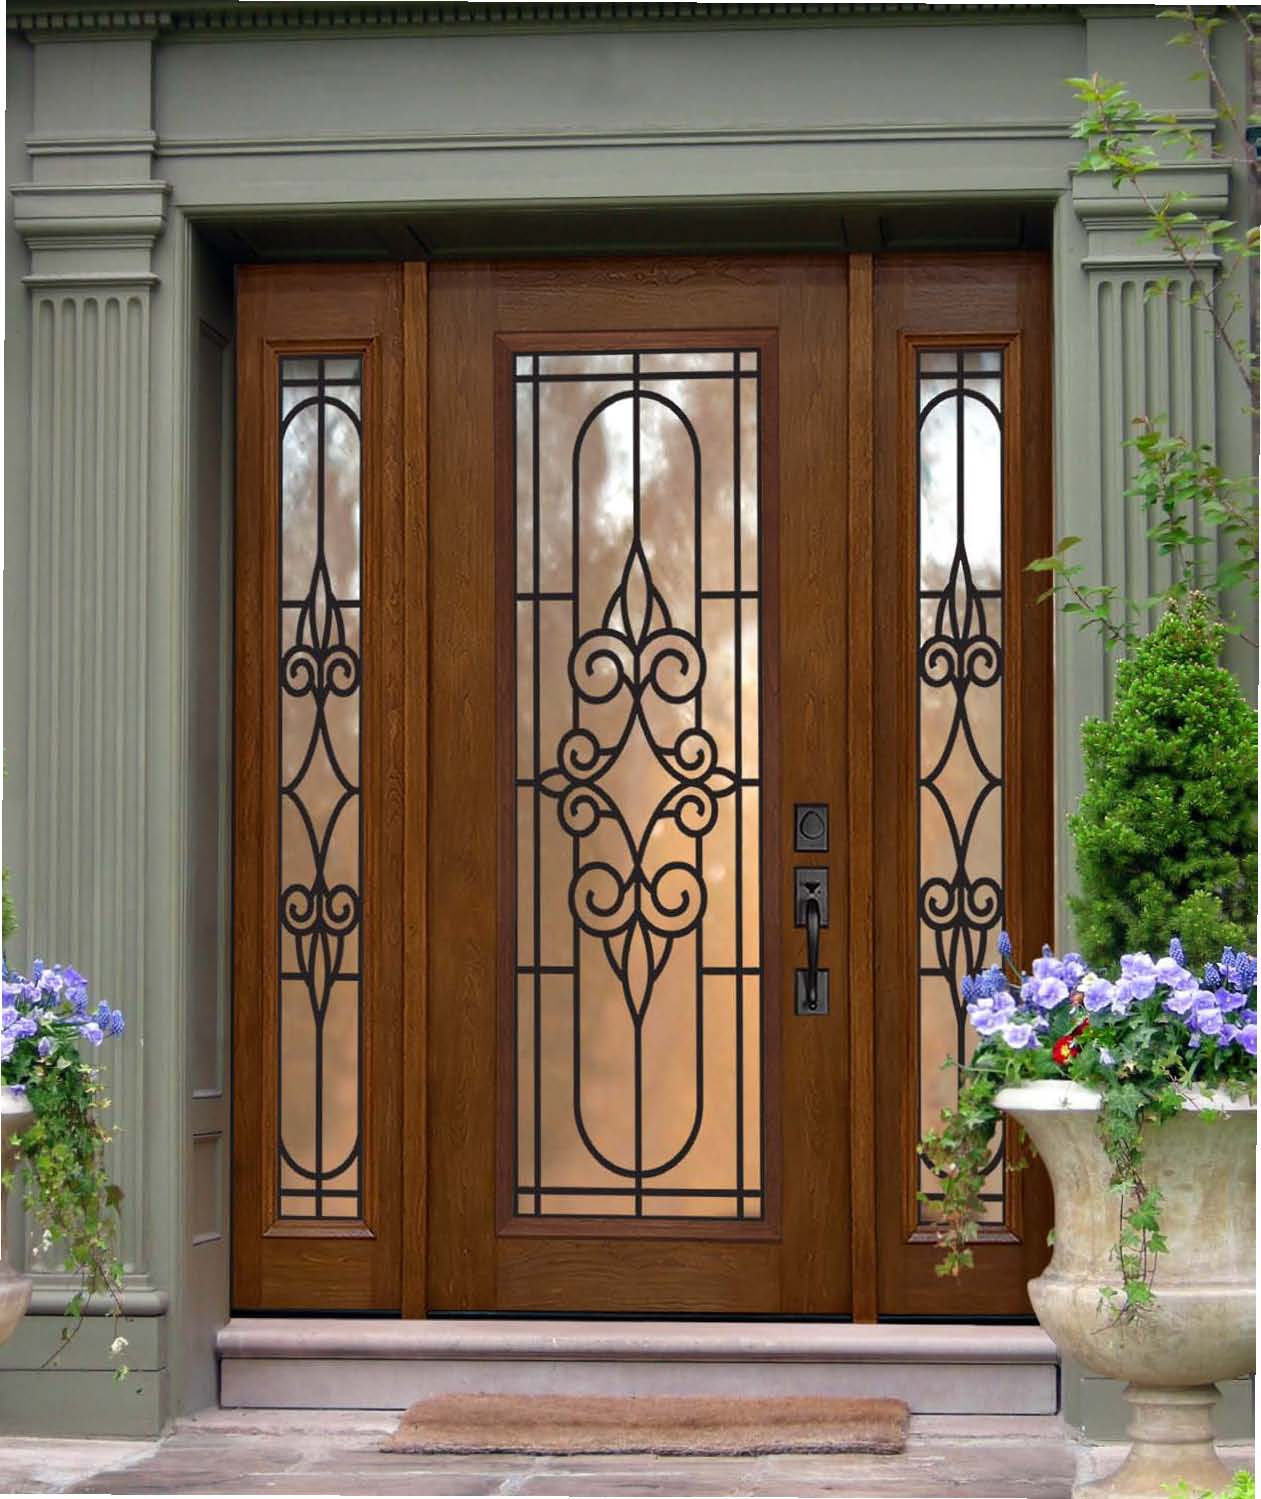 1499 #613B1E US Door And More Inc.: Make Your Entry Door Trendy With Sidelights wallpaper Entry Doors With Sidelites 38851261